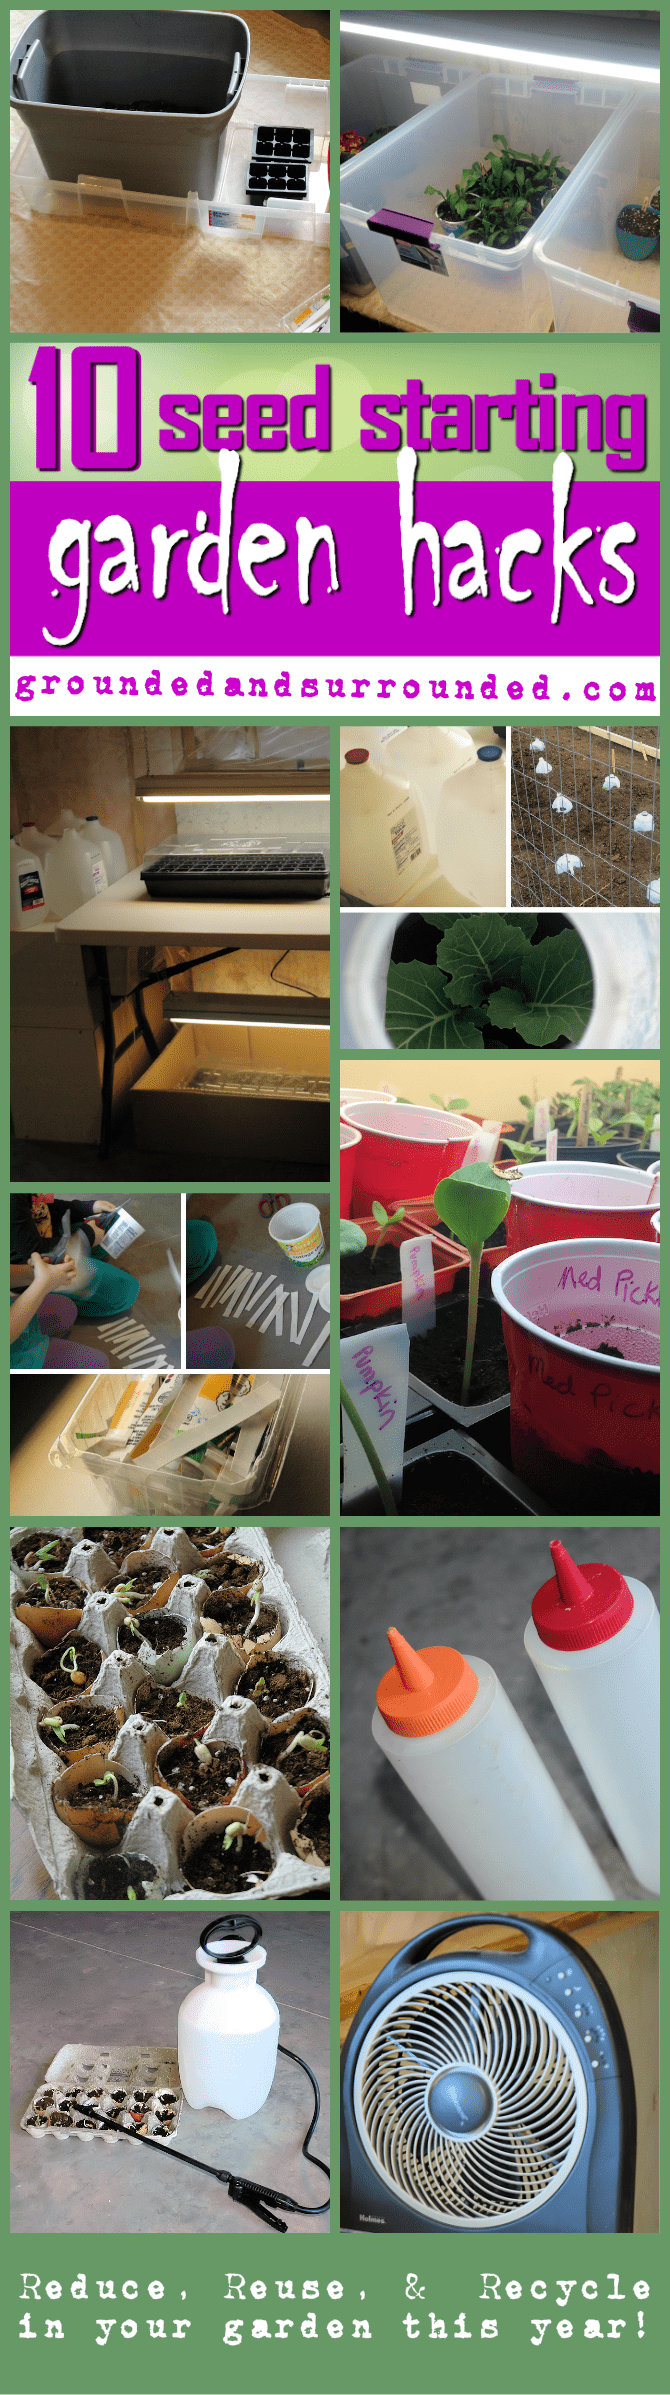 10 Seed Starting Garden Hacks   Grounded & Surrounded